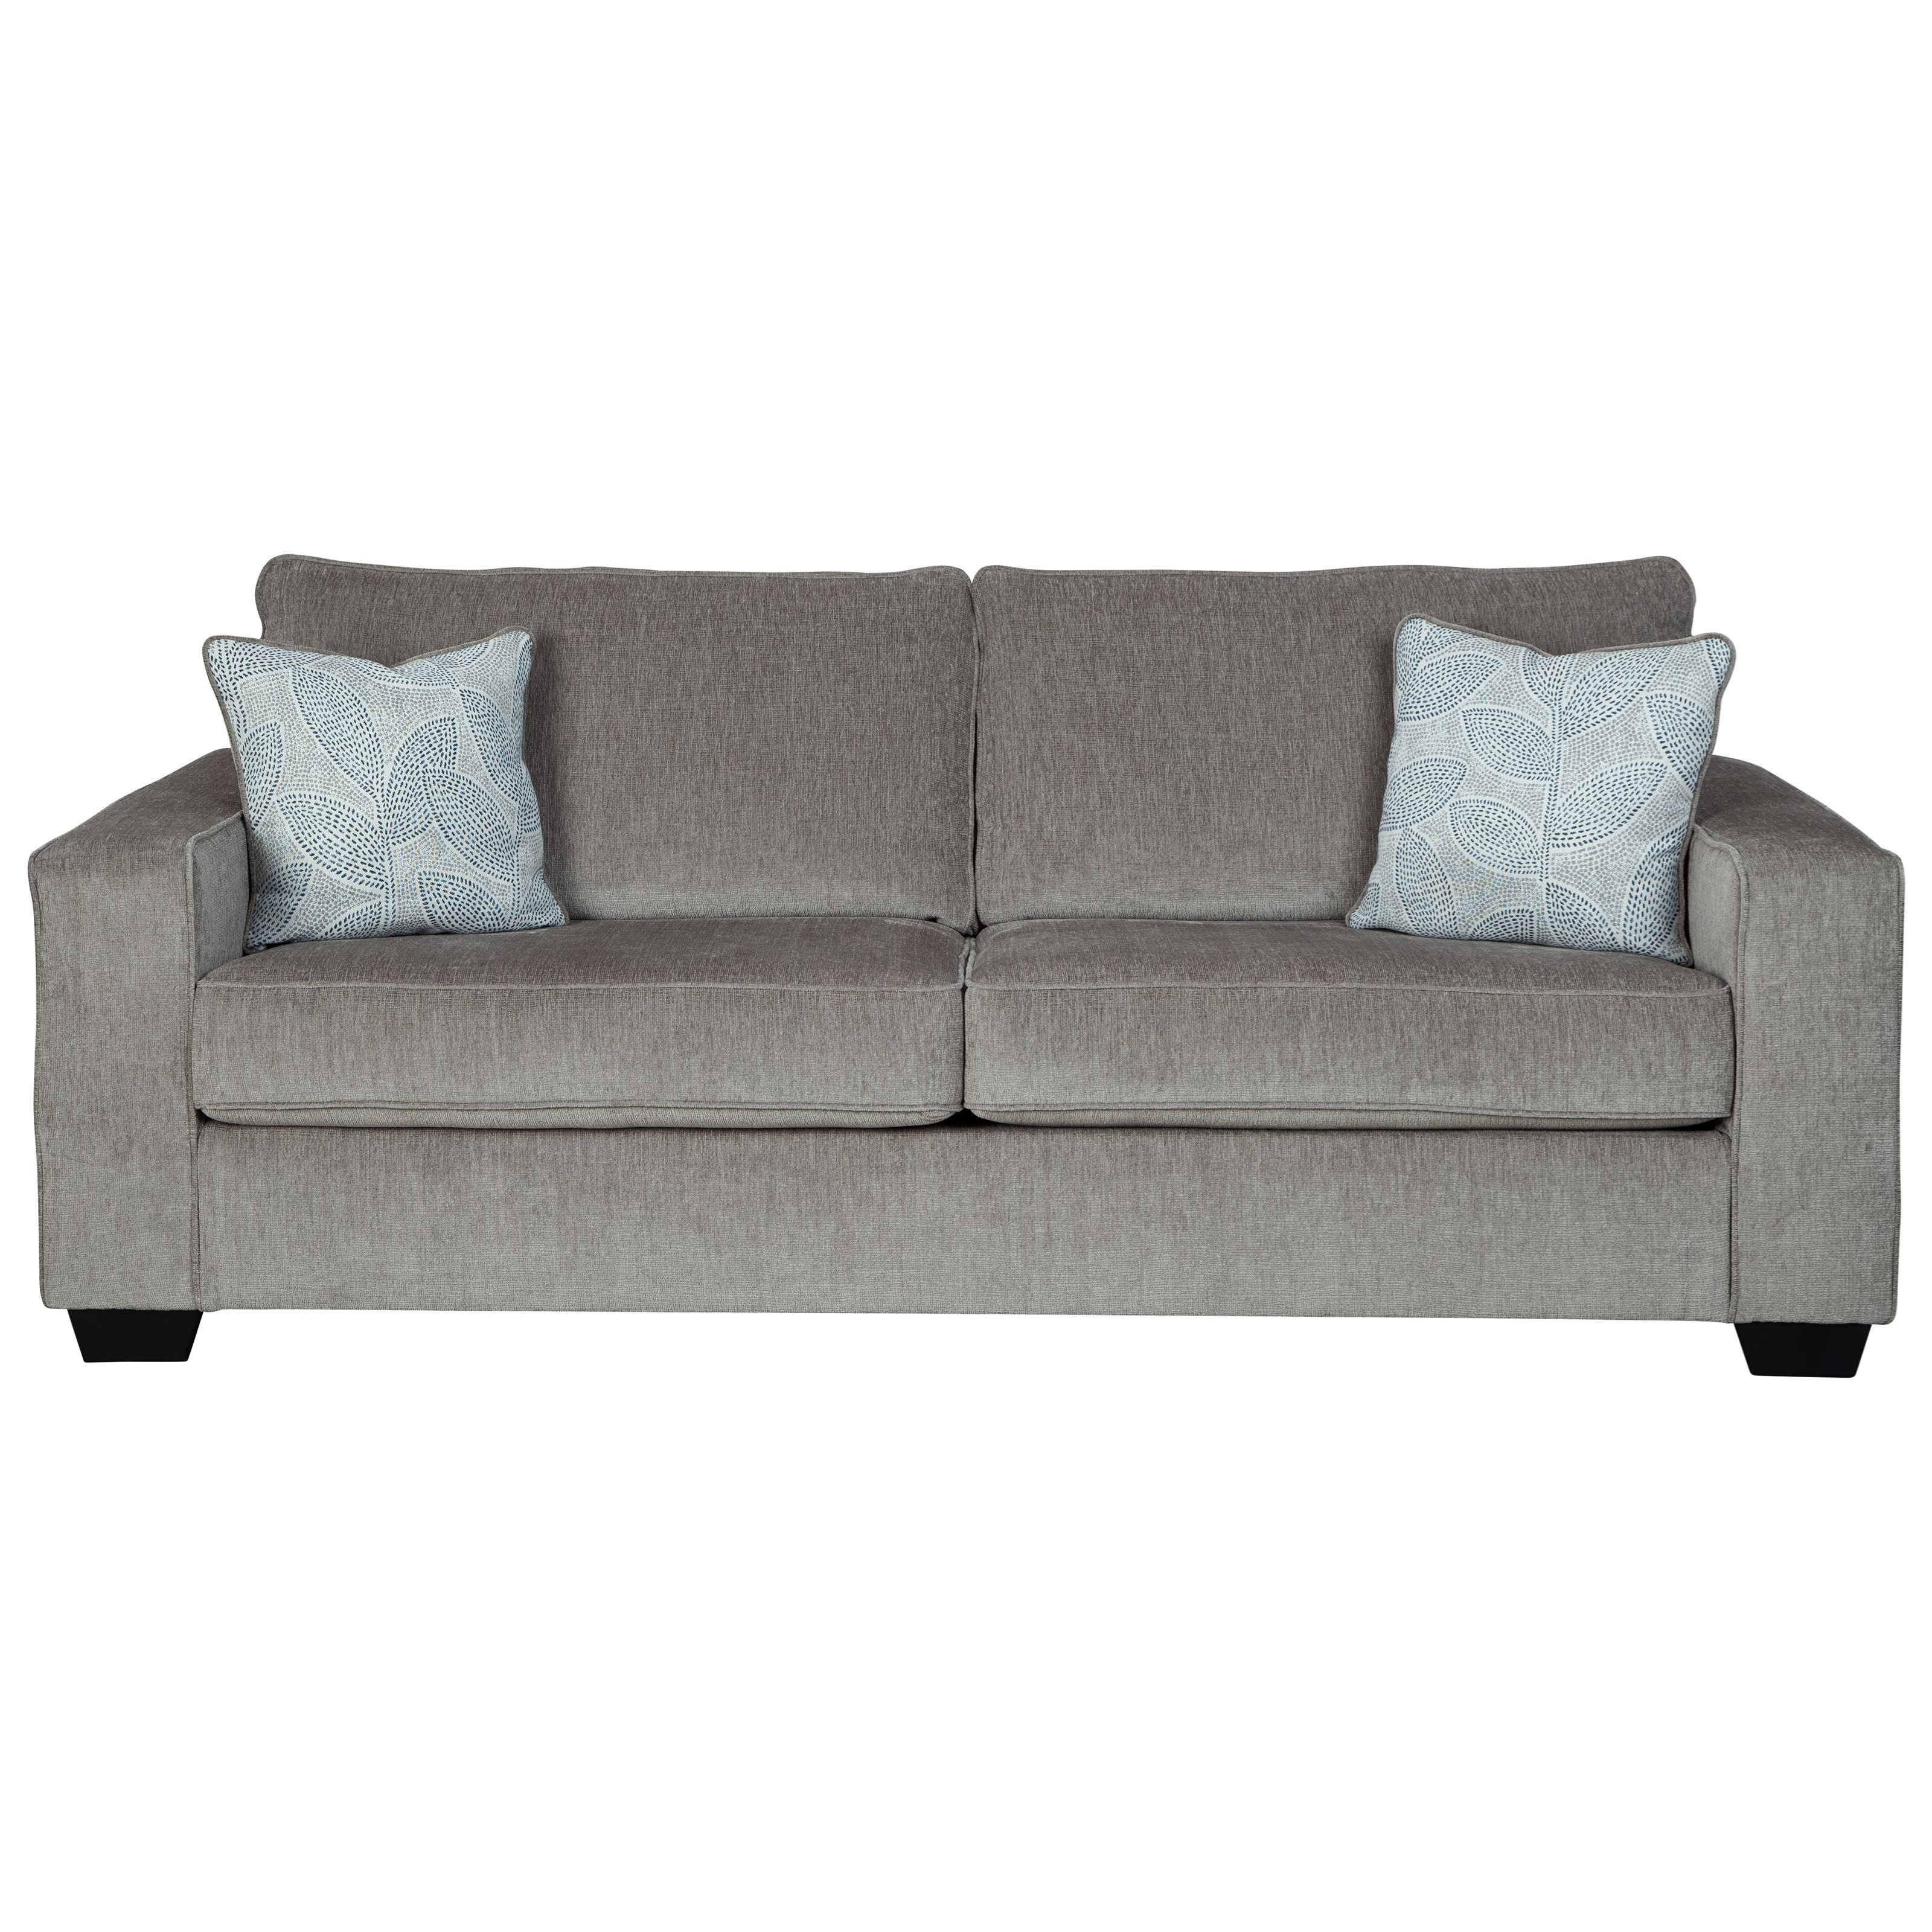 - Signature Design By Ashley Altari Queen Sofa Sleeper With Memory